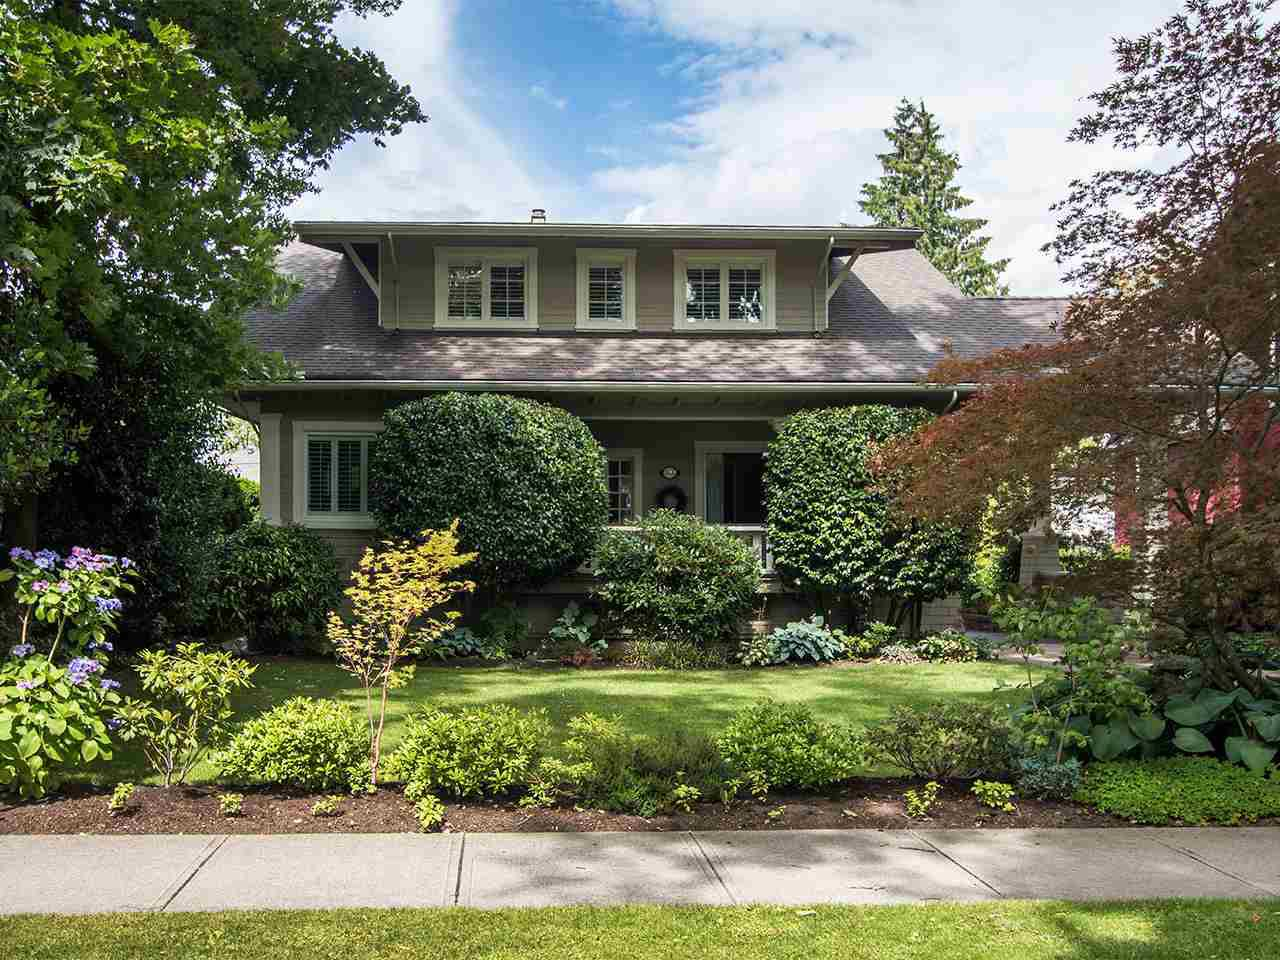 Main Photo: 1355 DEVONSHIRE CRESCENT in Vancouver: Shaughnessy House for sale (Vancouver West)  : MLS®# R2090147